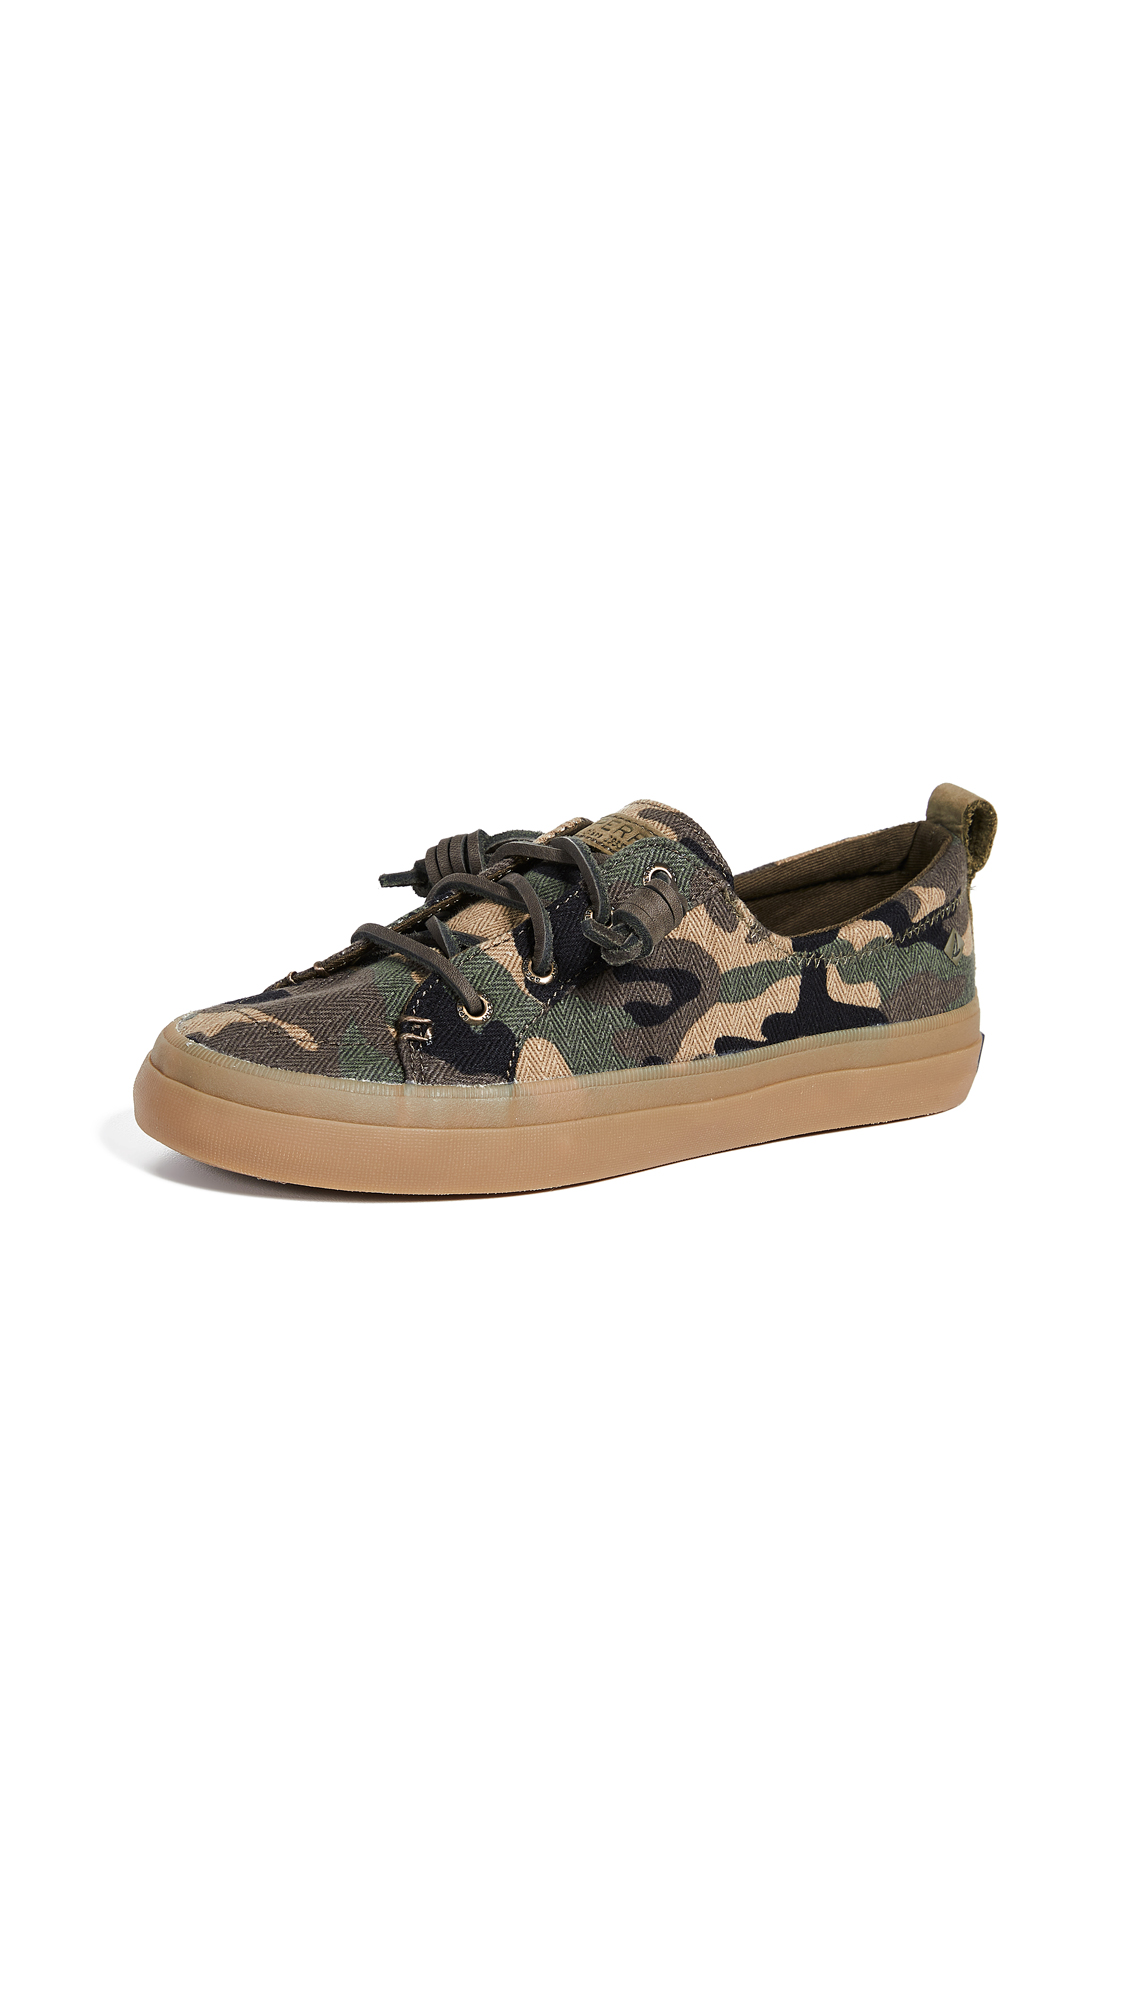 Sperry Crest Vibe Camo Sneakers